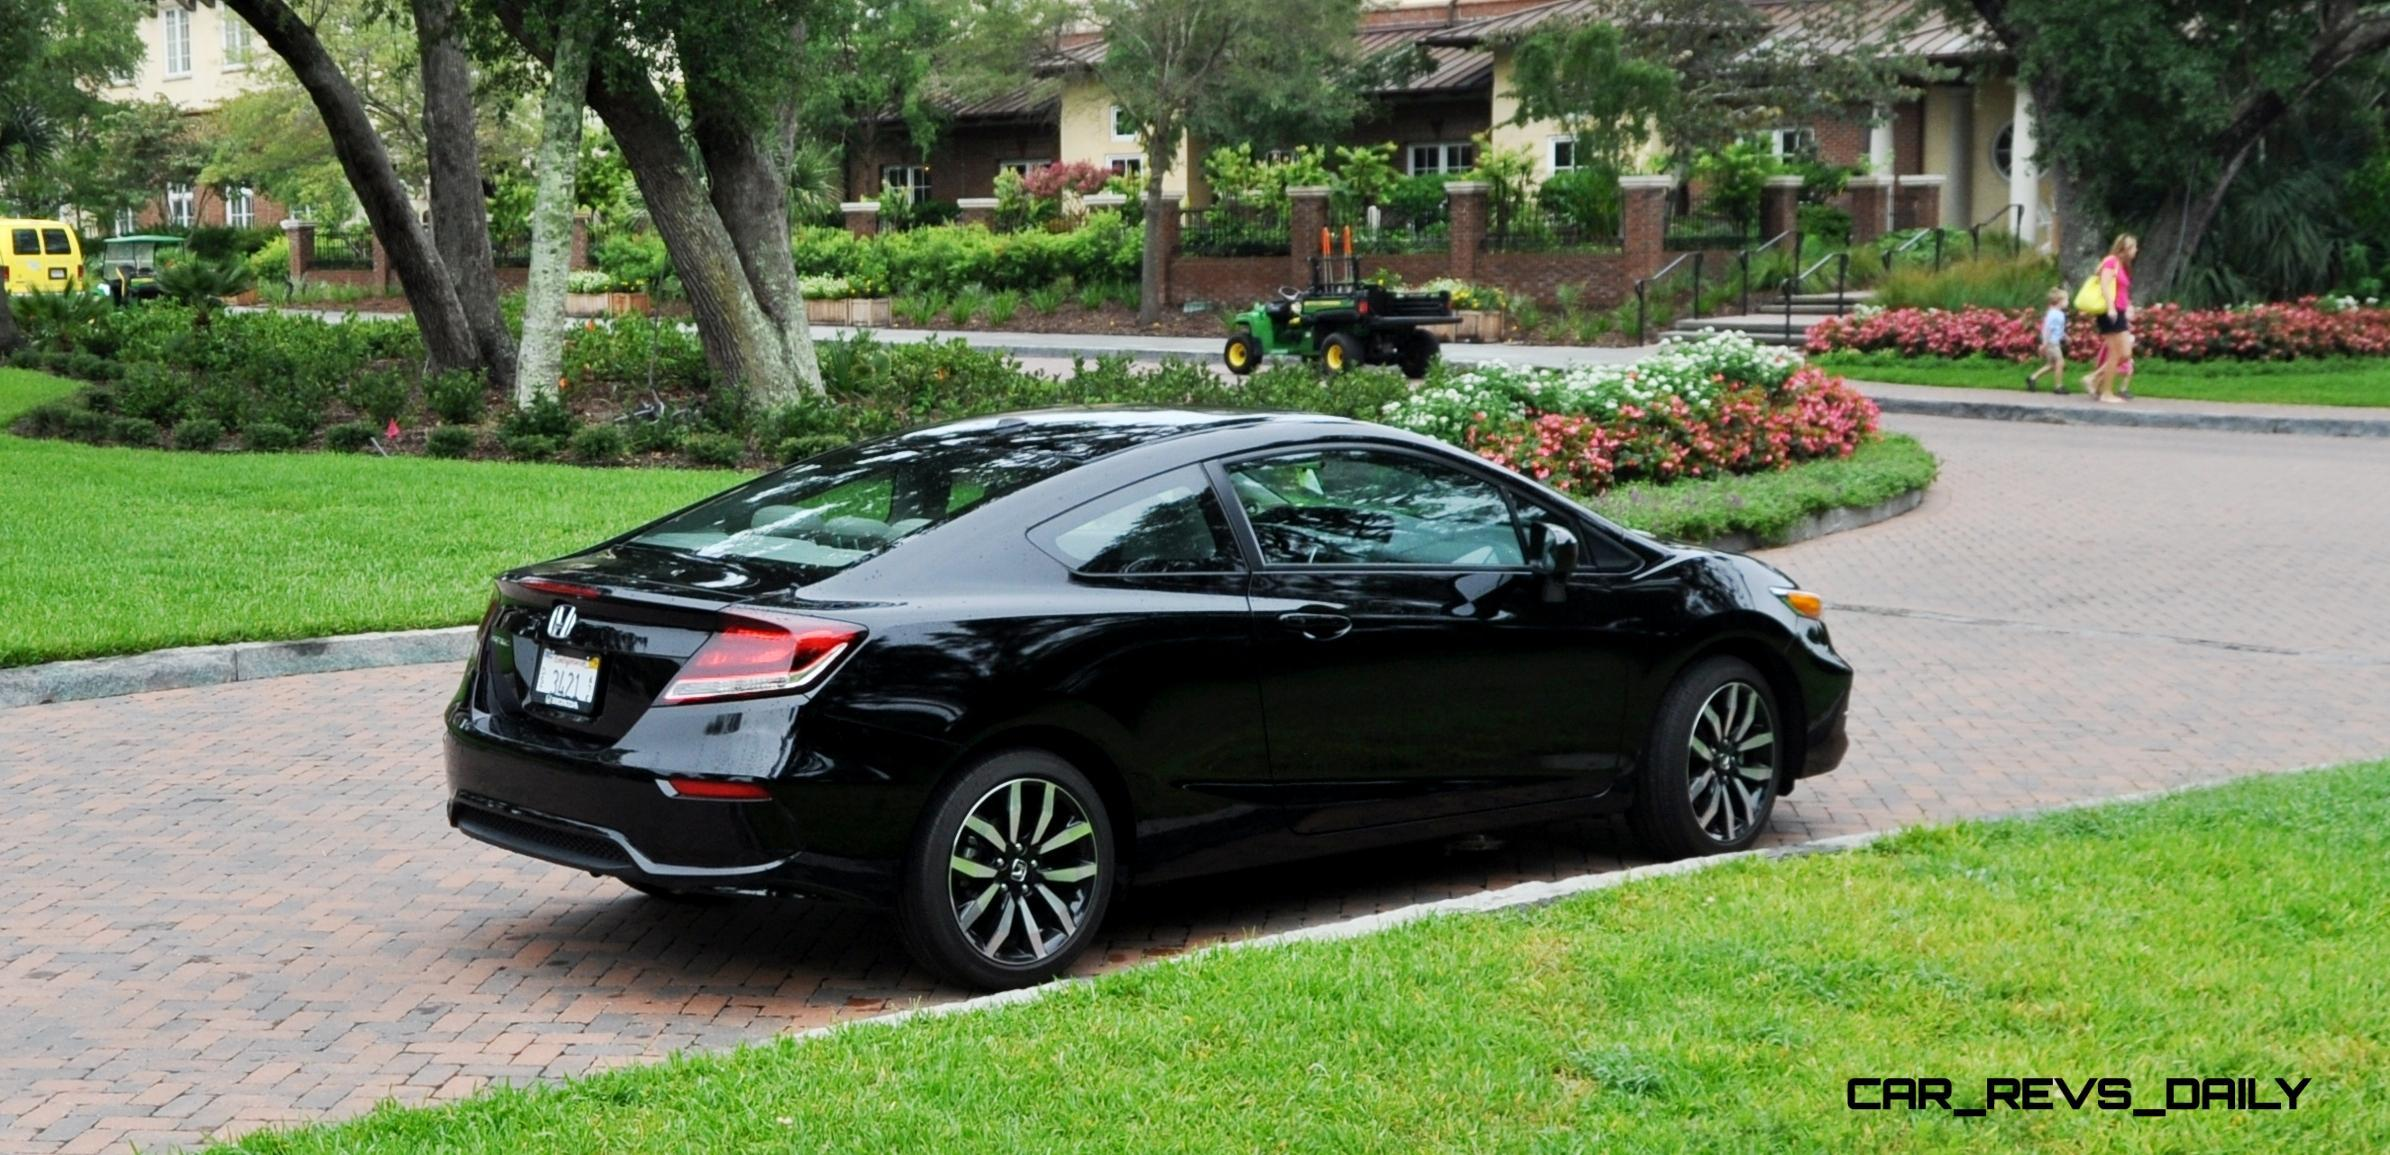 road test review 2014 honda civic ex l coupe 122. Black Bedroom Furniture Sets. Home Design Ideas